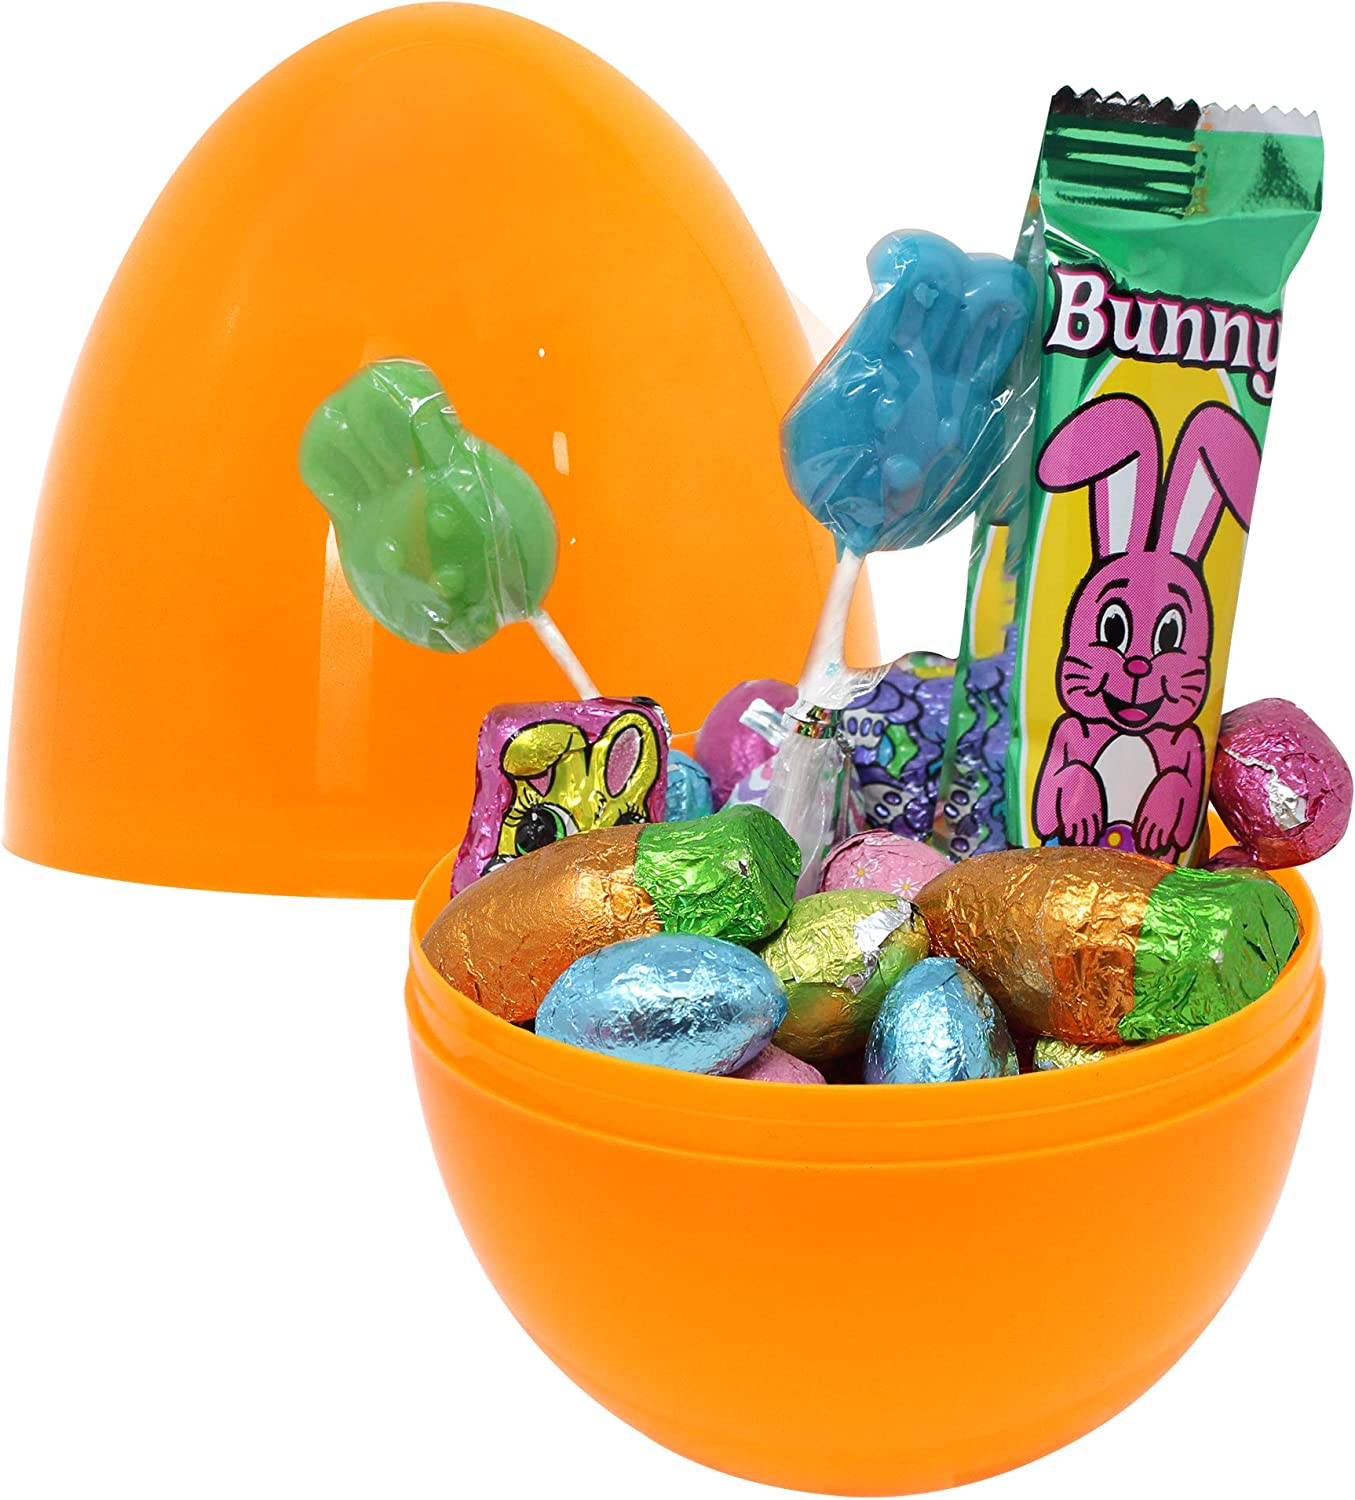 Easter Theme Party Favor Classroom Prize Supplies Toylid Colors Giant Easter Eggs 24 Pcs 7 Jumbo Plastic Bright Solid Easter Eggs Assorted Colors for Filling Treats Basket Stuffers Fillers Easter Eggs Hunt